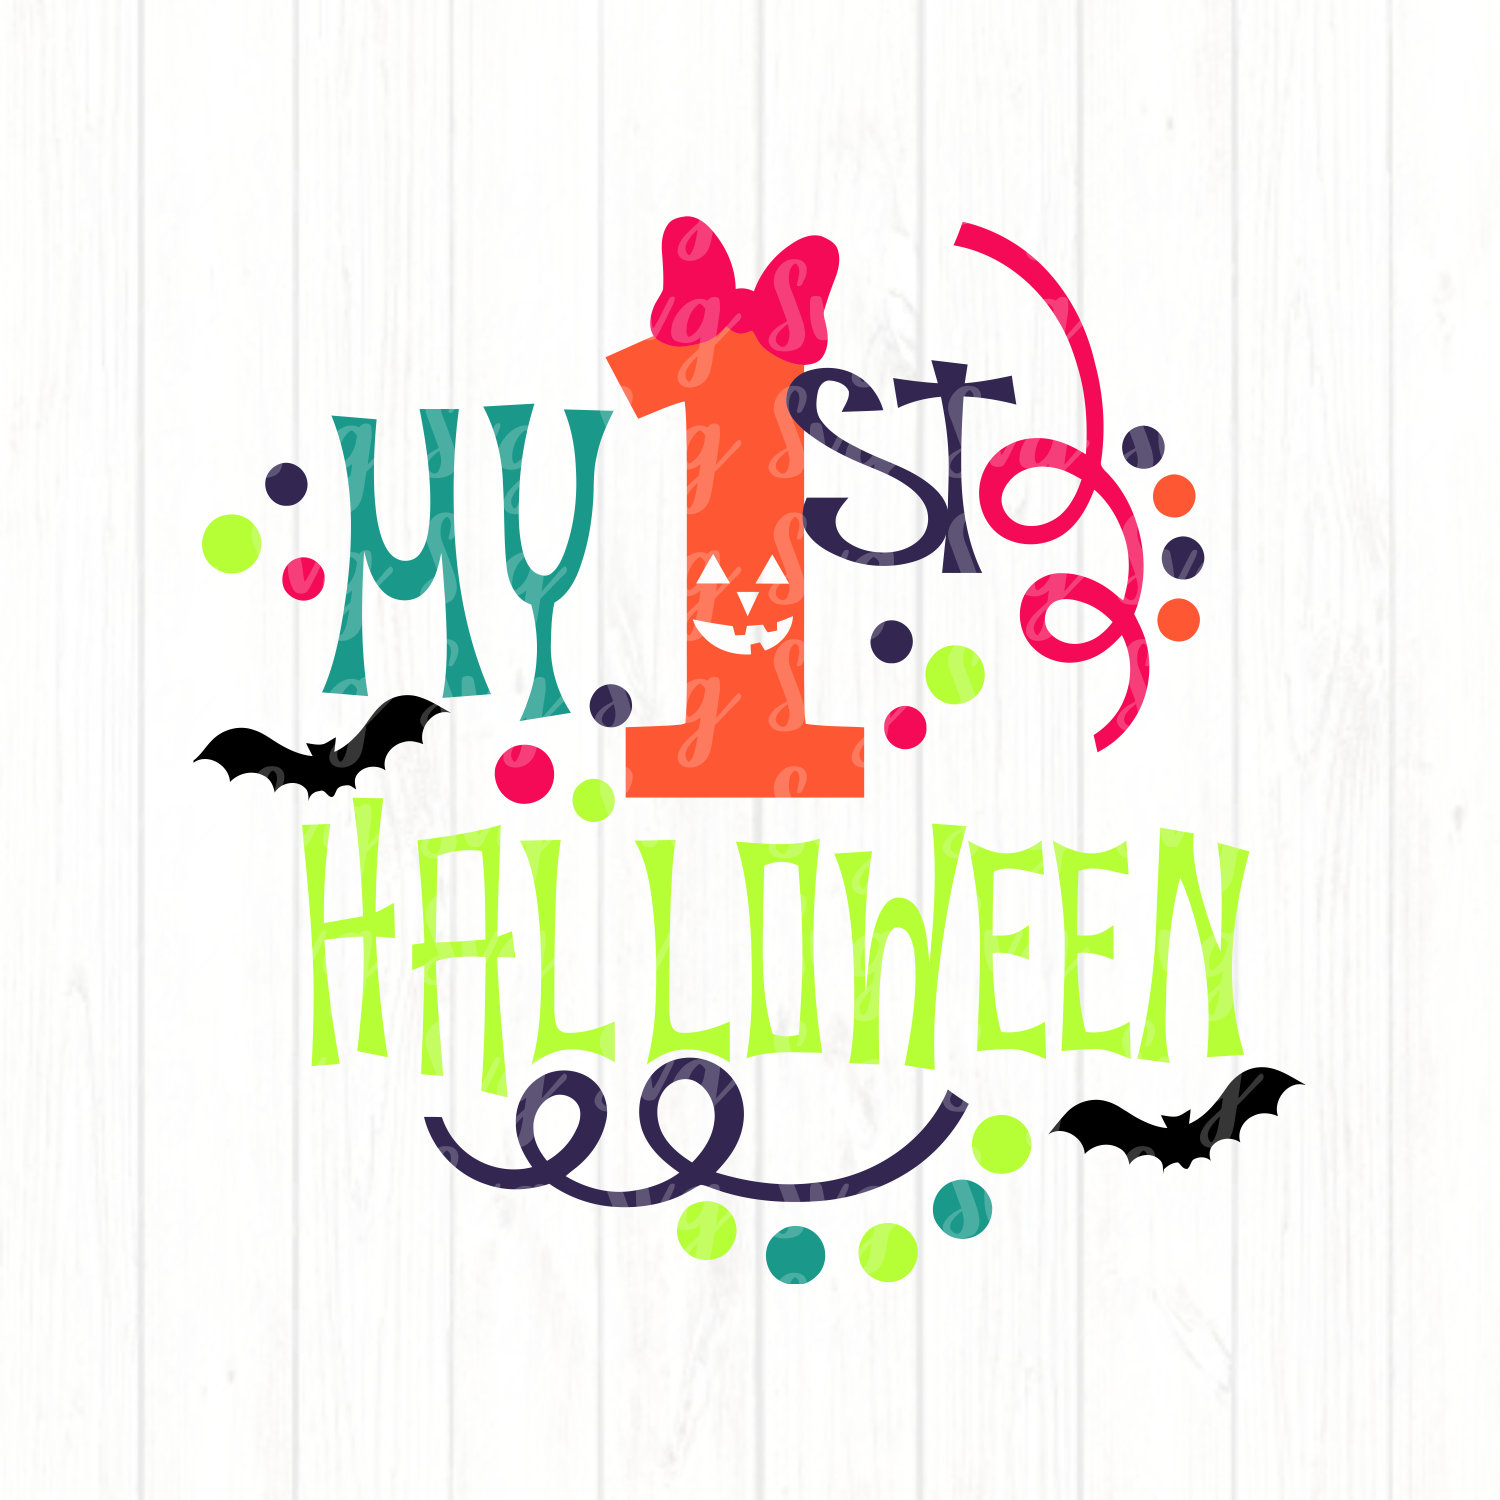 My First Halloween With Bowsvg Halloween Svg First Halloween Svgs Ghost Svg Halloween Svg Halloween Vector Cricut Designs Silhouette Designs Svg For Cricut